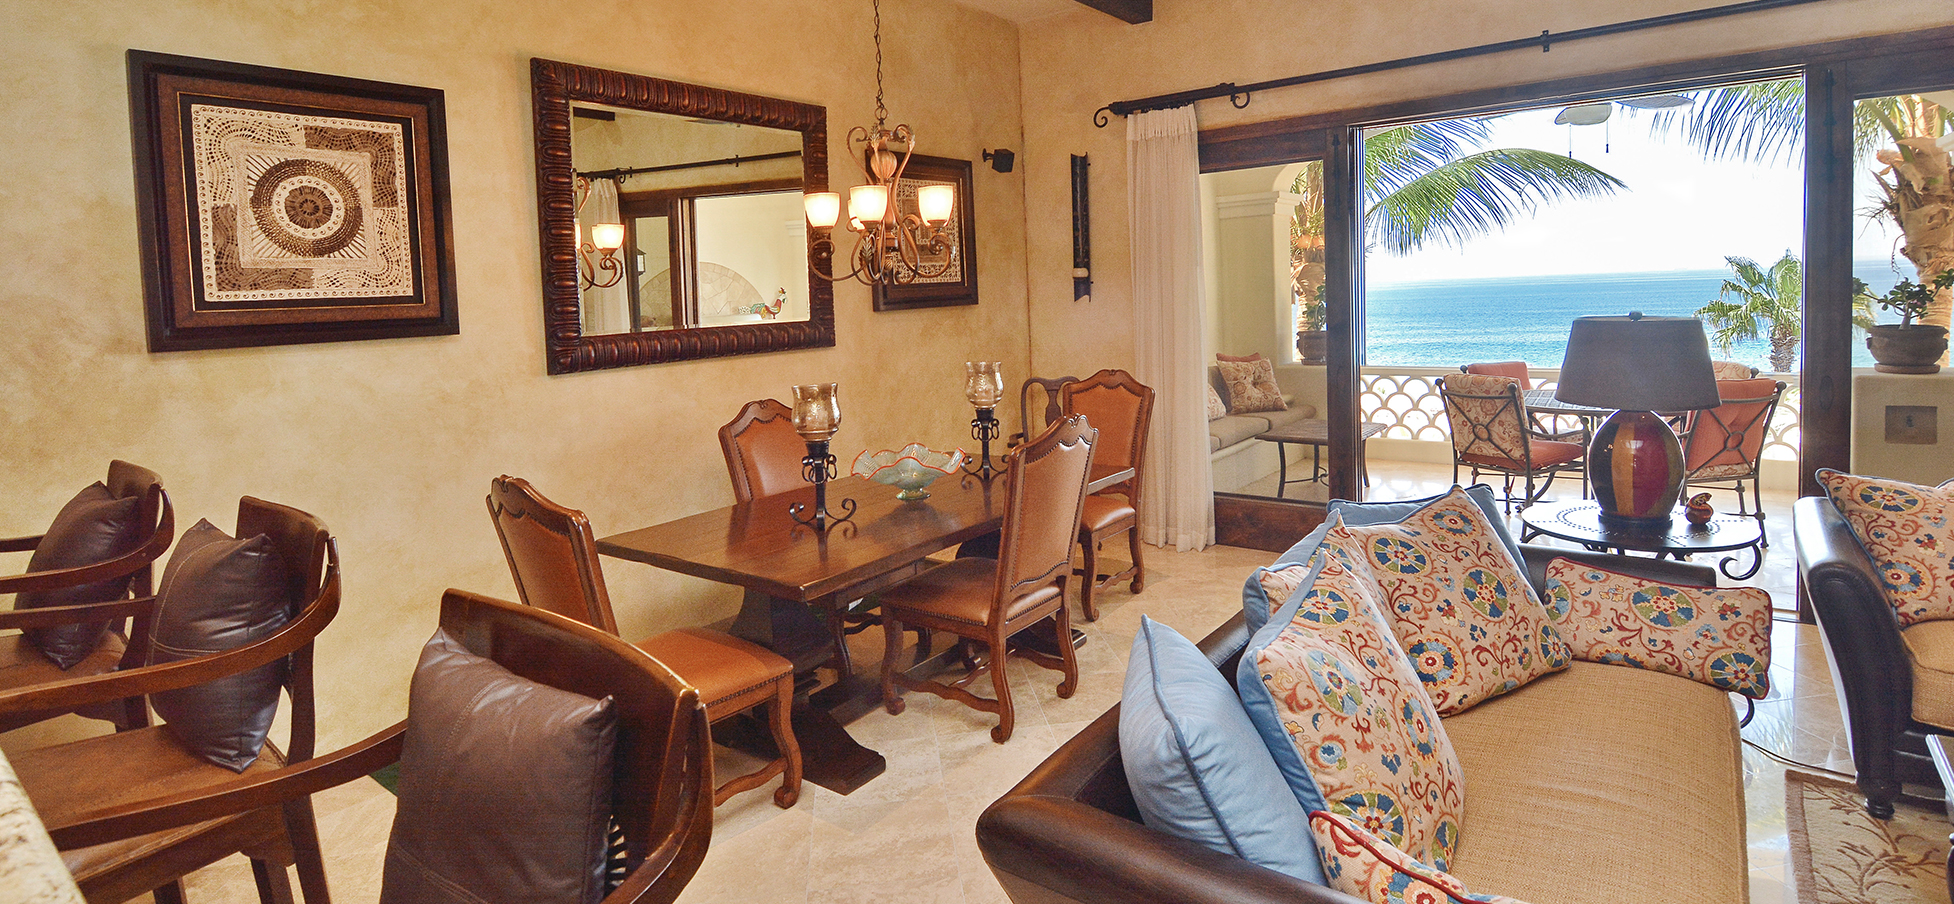 C 202 condo for sale in Cabo